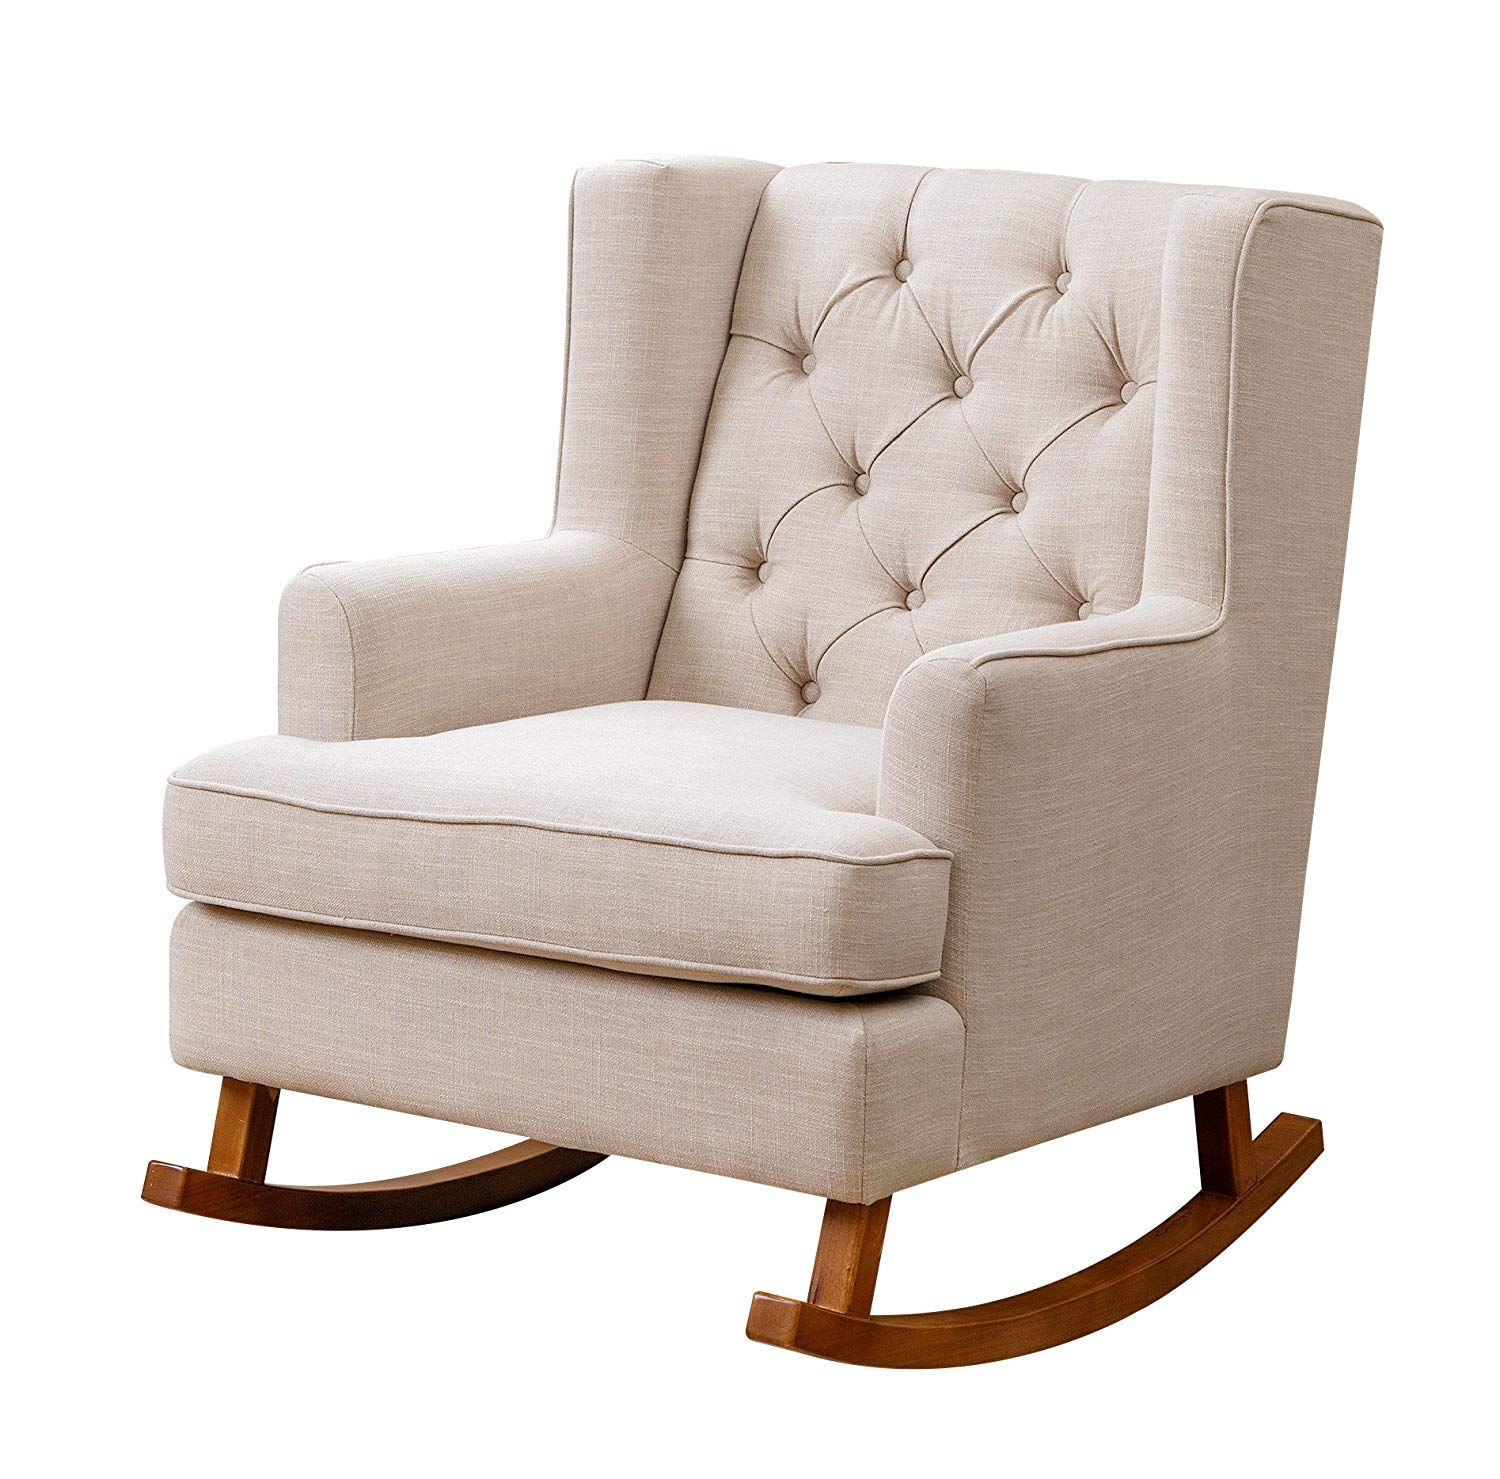 Abbyson Primrose Fabric Rocker, Beige (With images